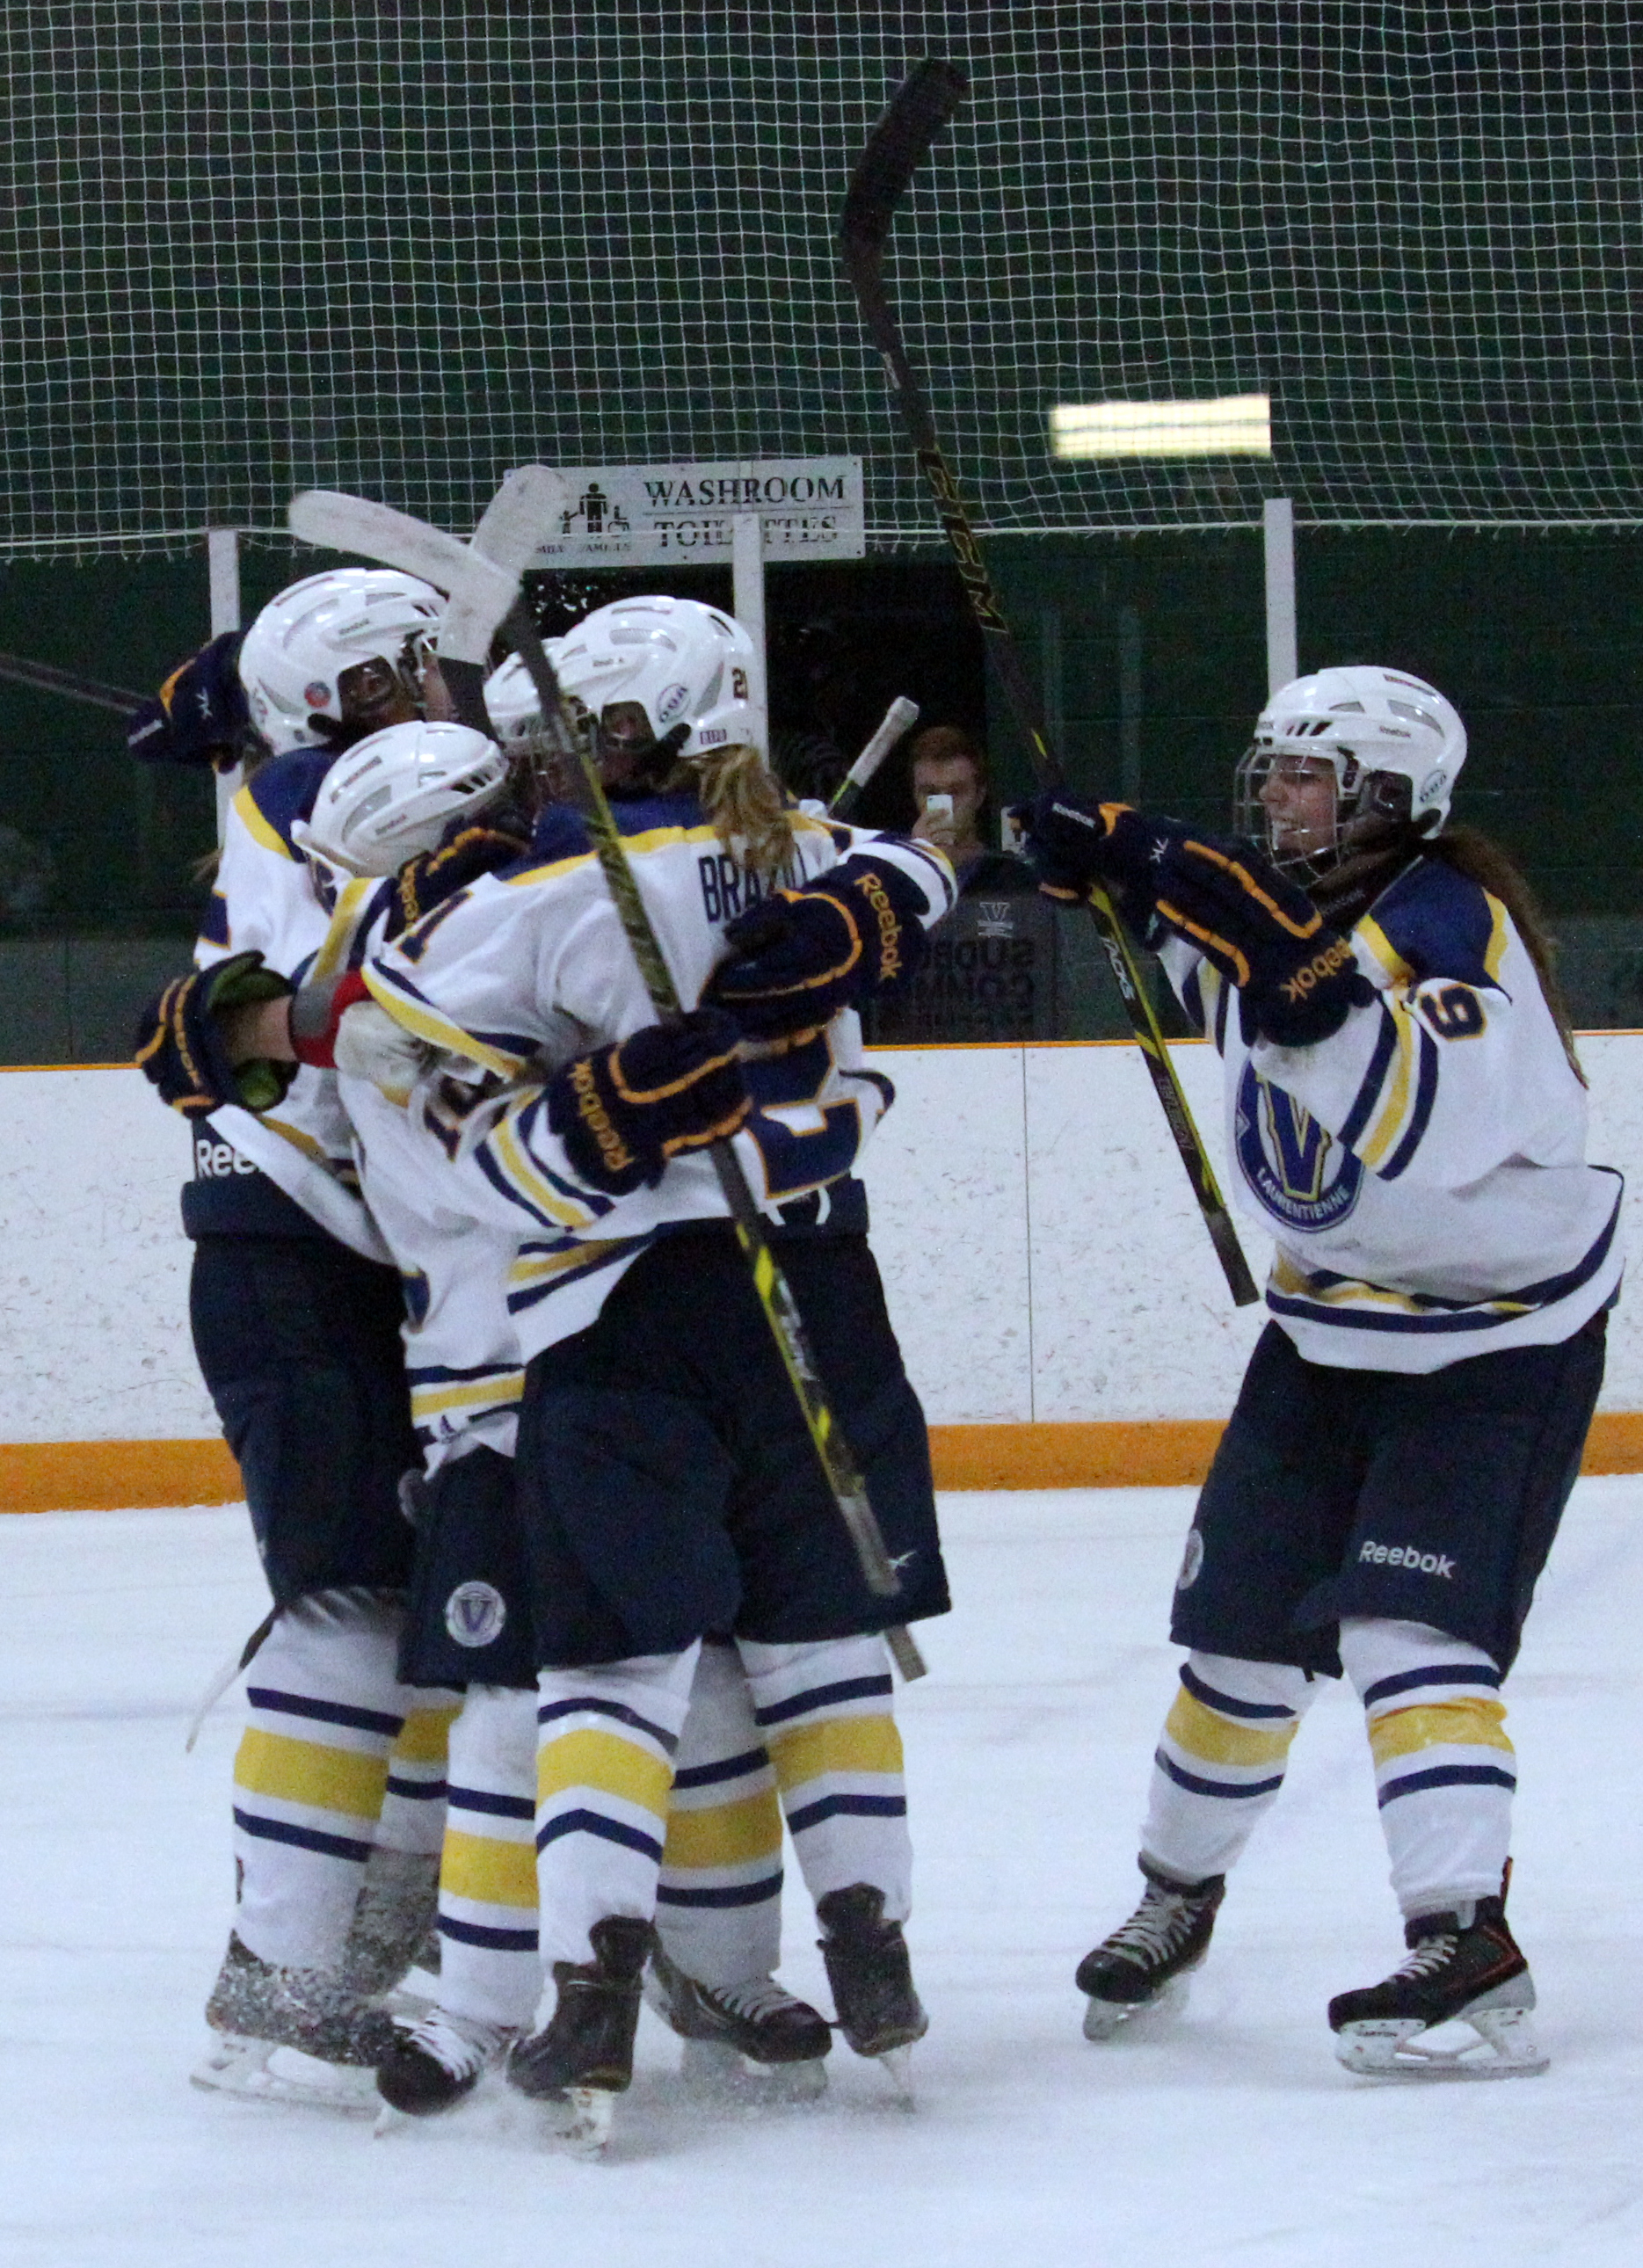 Members of the women's Voyageurs hockey team celebrate after scoring a goal. Photo by Gabriel Rodrigues